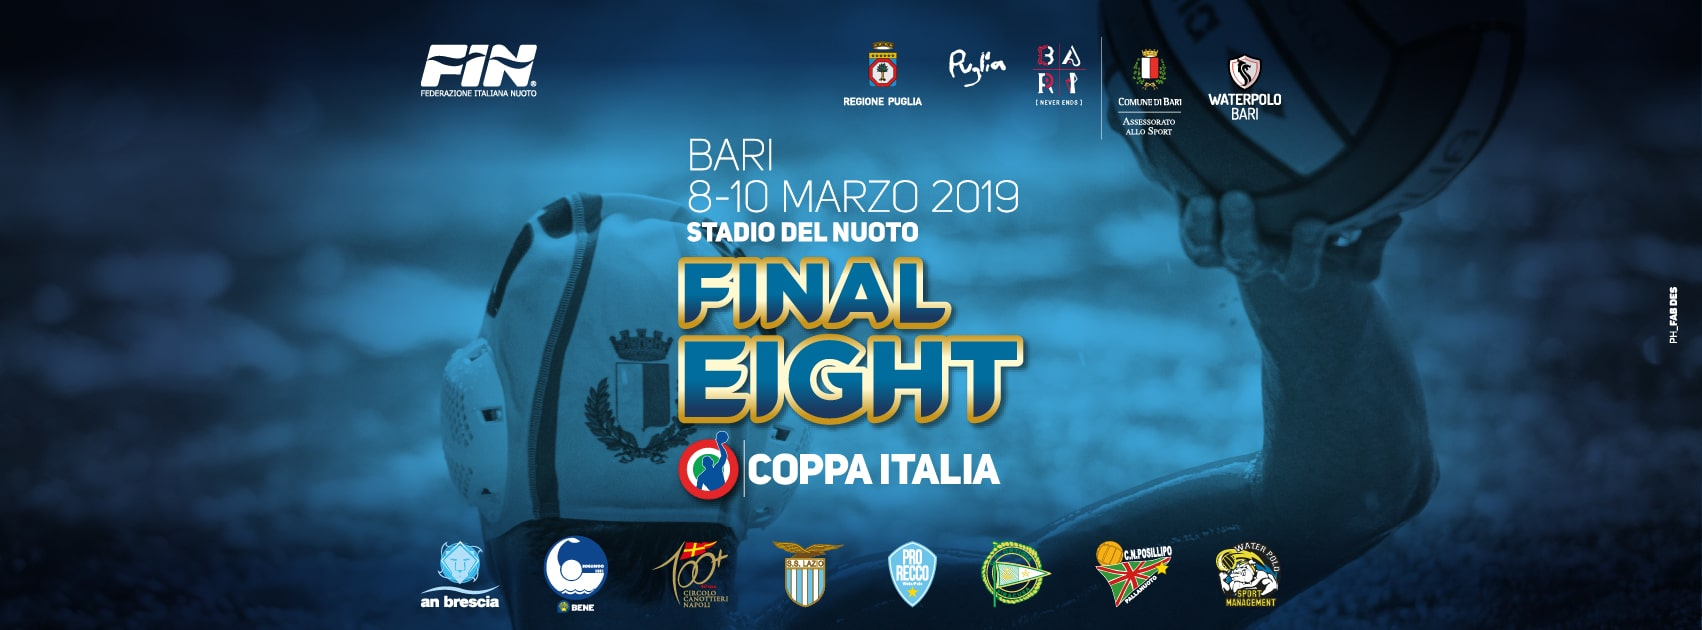 final eight coppa italia pallanuoto maschile campionato 2019